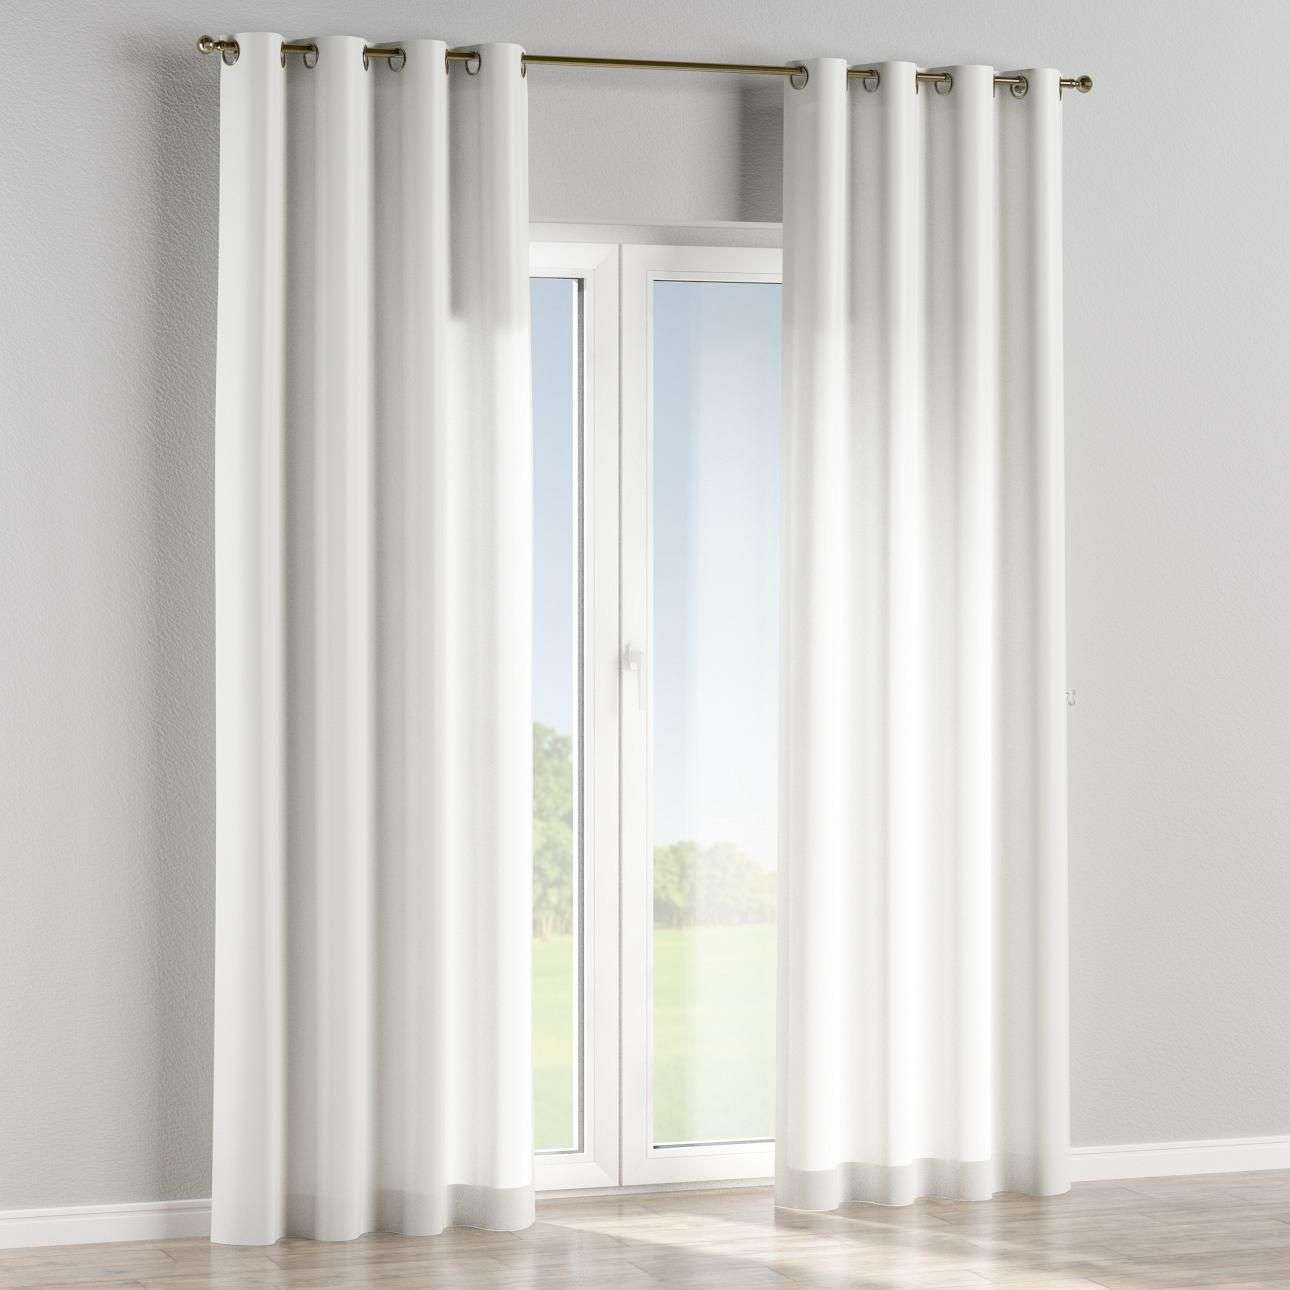 Eyelet lined curtains in collection Victoria, fabric: 130-05